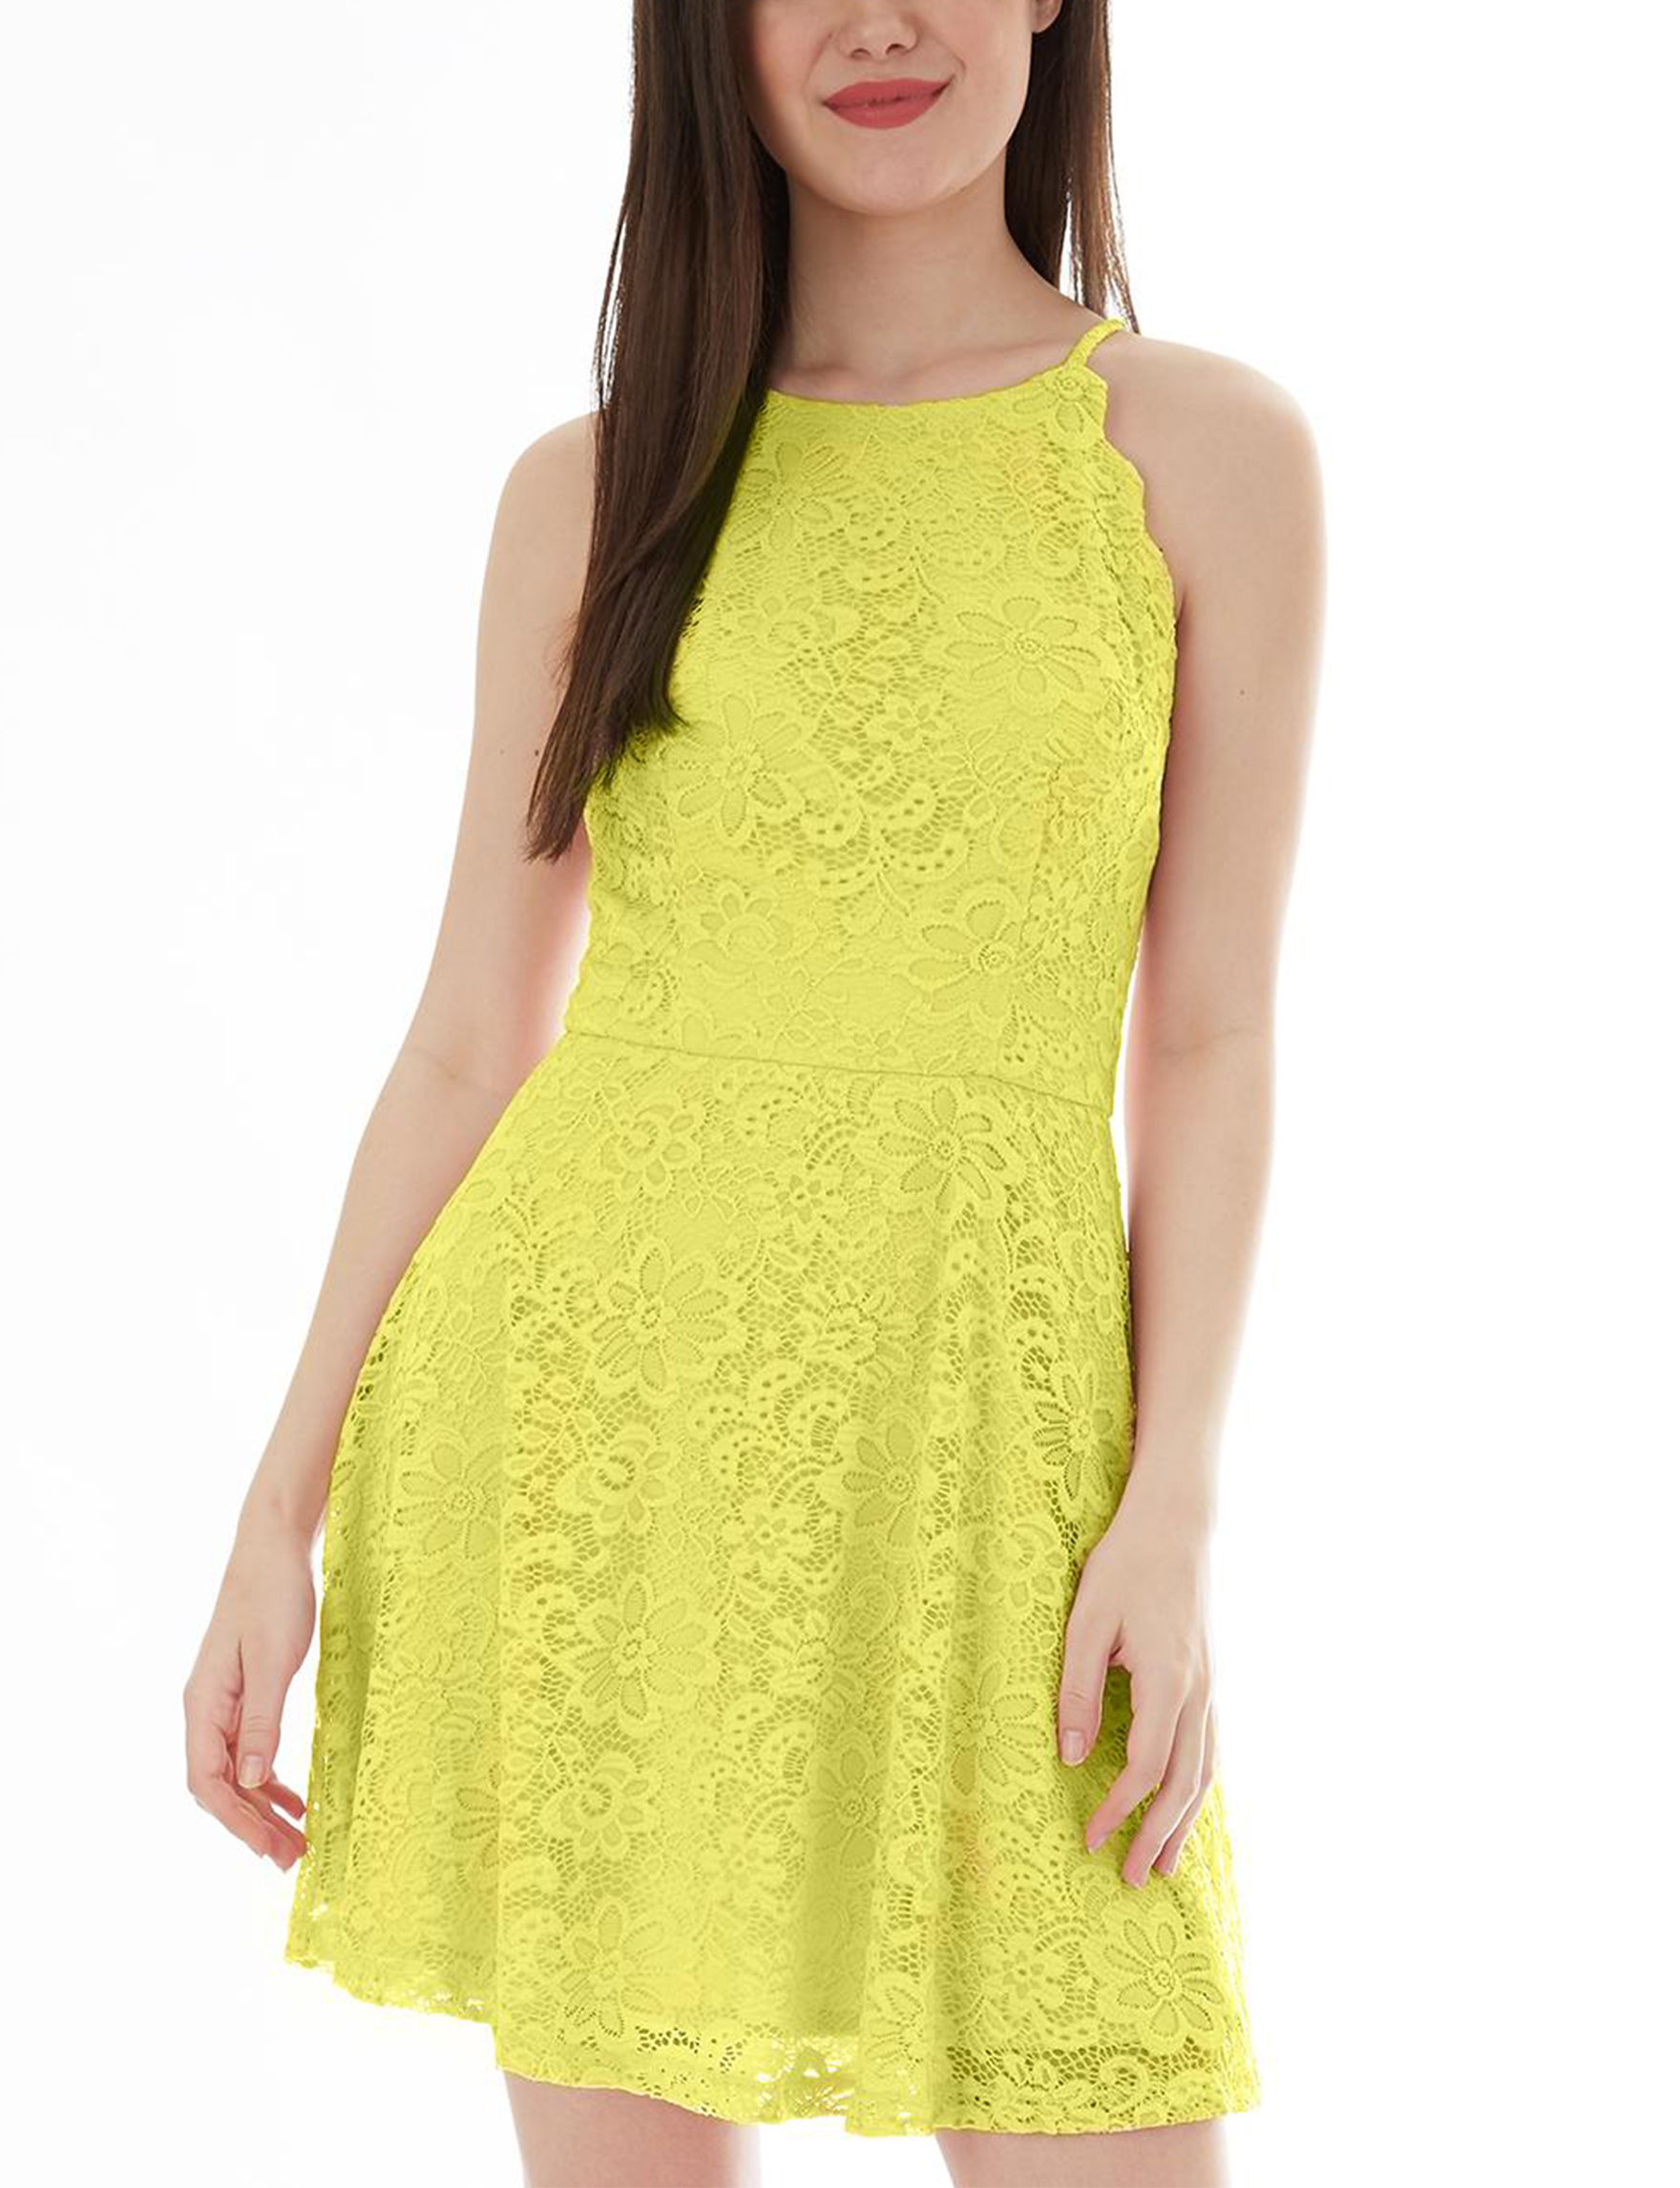 A. Byer Neon Yellow Everyday & Casual Halter Sheath Dresses